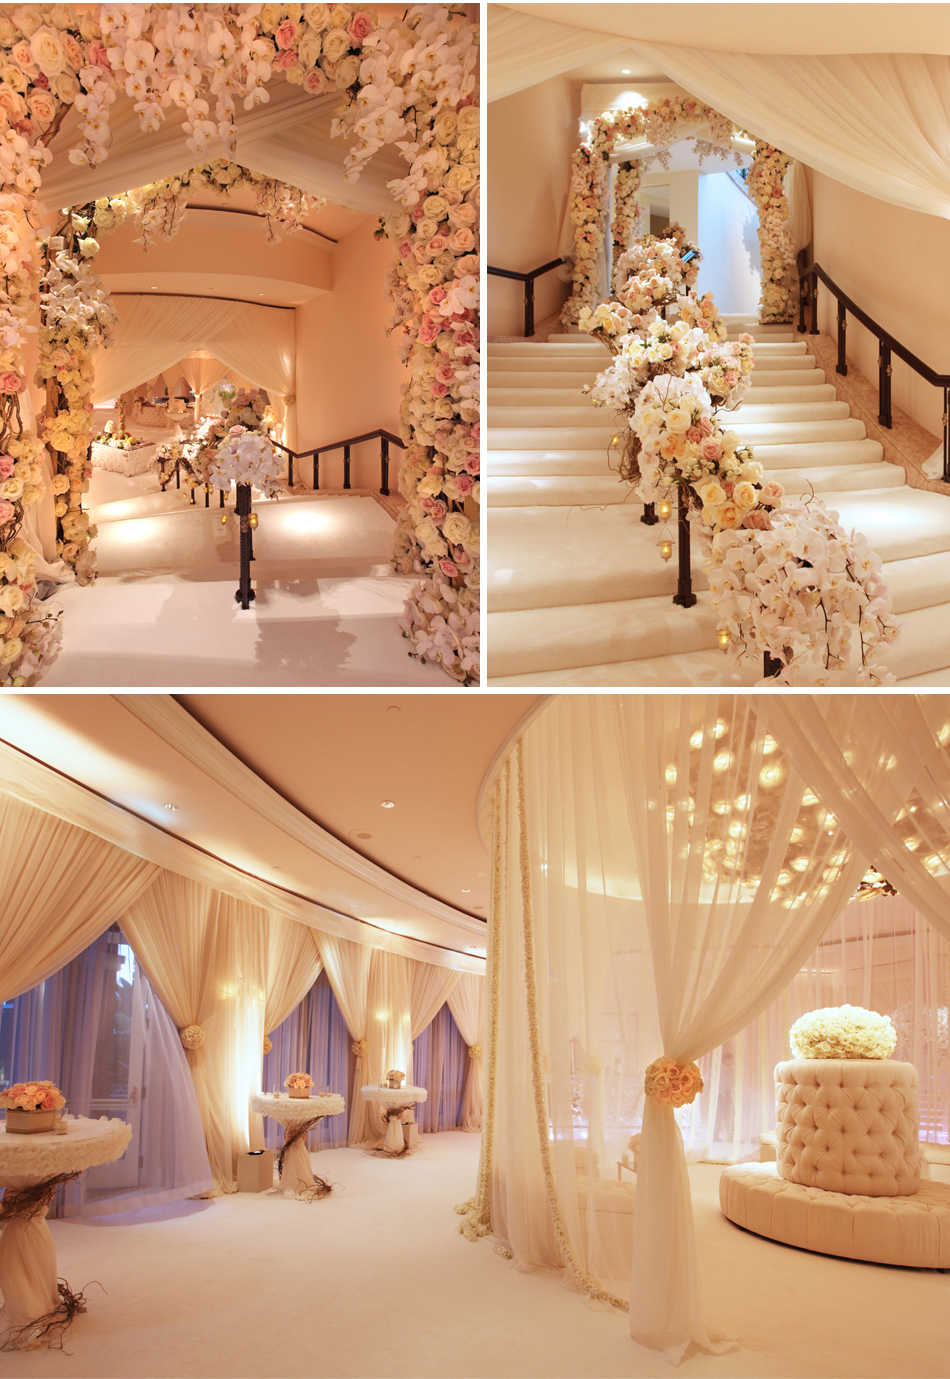 internationaleventcompany.com | International Event Company Los Angeles Wedding Planner and Designer | Weddings at The Four Seasons and Beverly Hills Hotel | Luxury Event Planners in Southern California _ (2).jpg